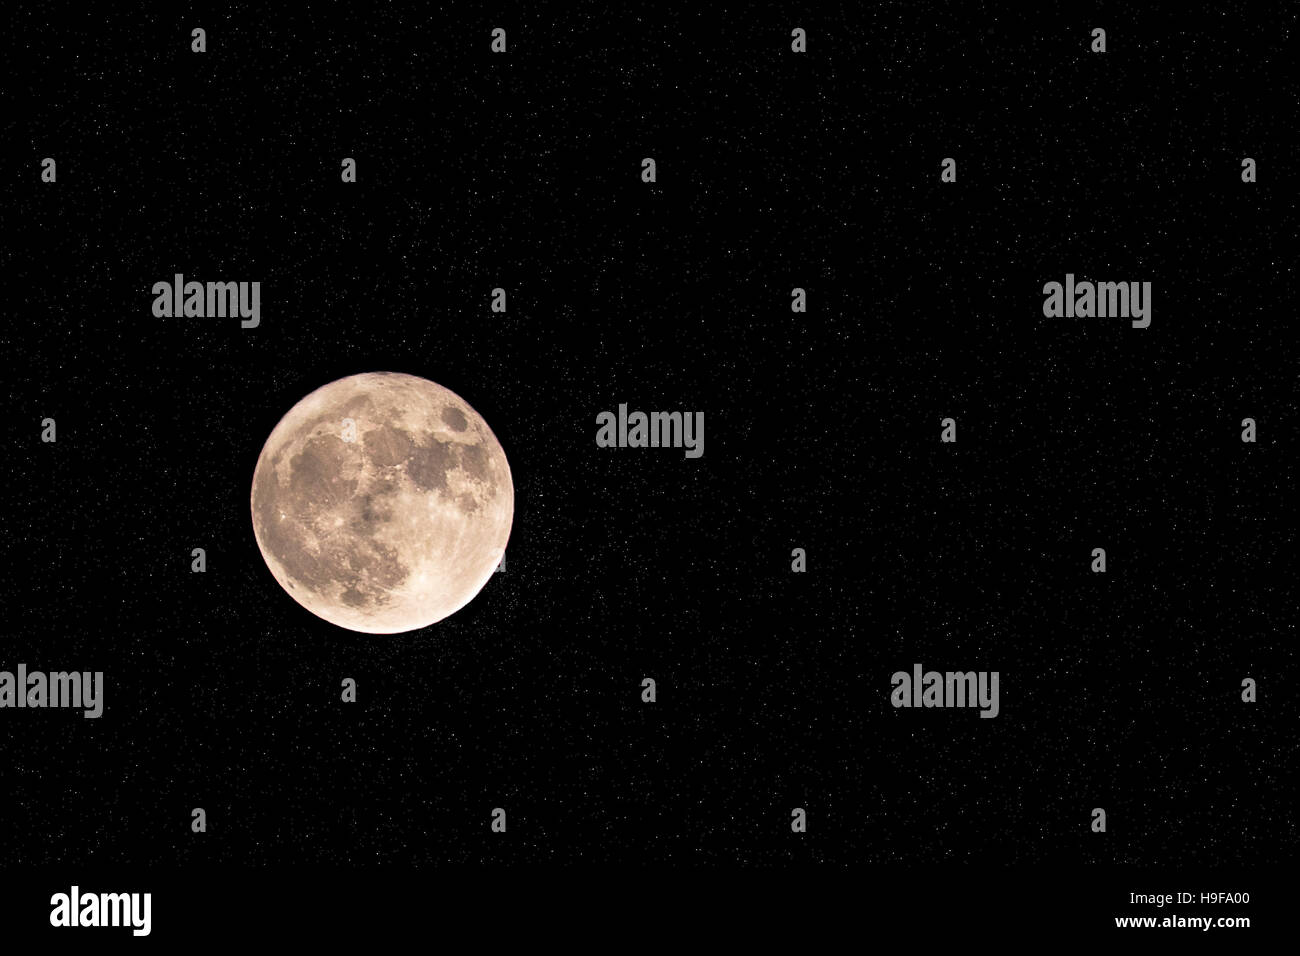 Big moon surrounded by millions of bright stars. - Stock Image